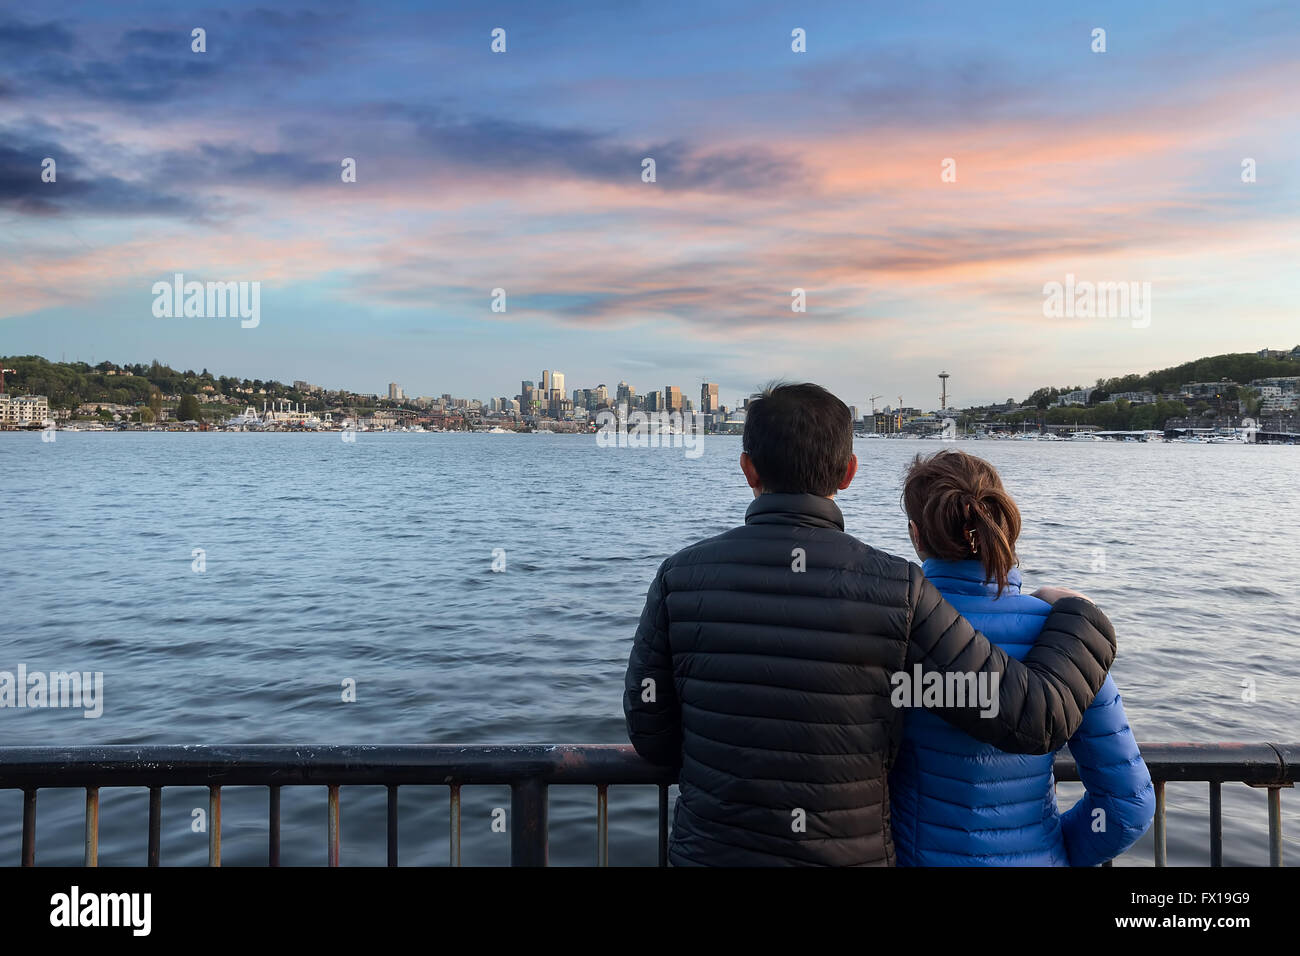 Couple watching sunset over Seattle Washington city skyline along Lake Union - Stock Image